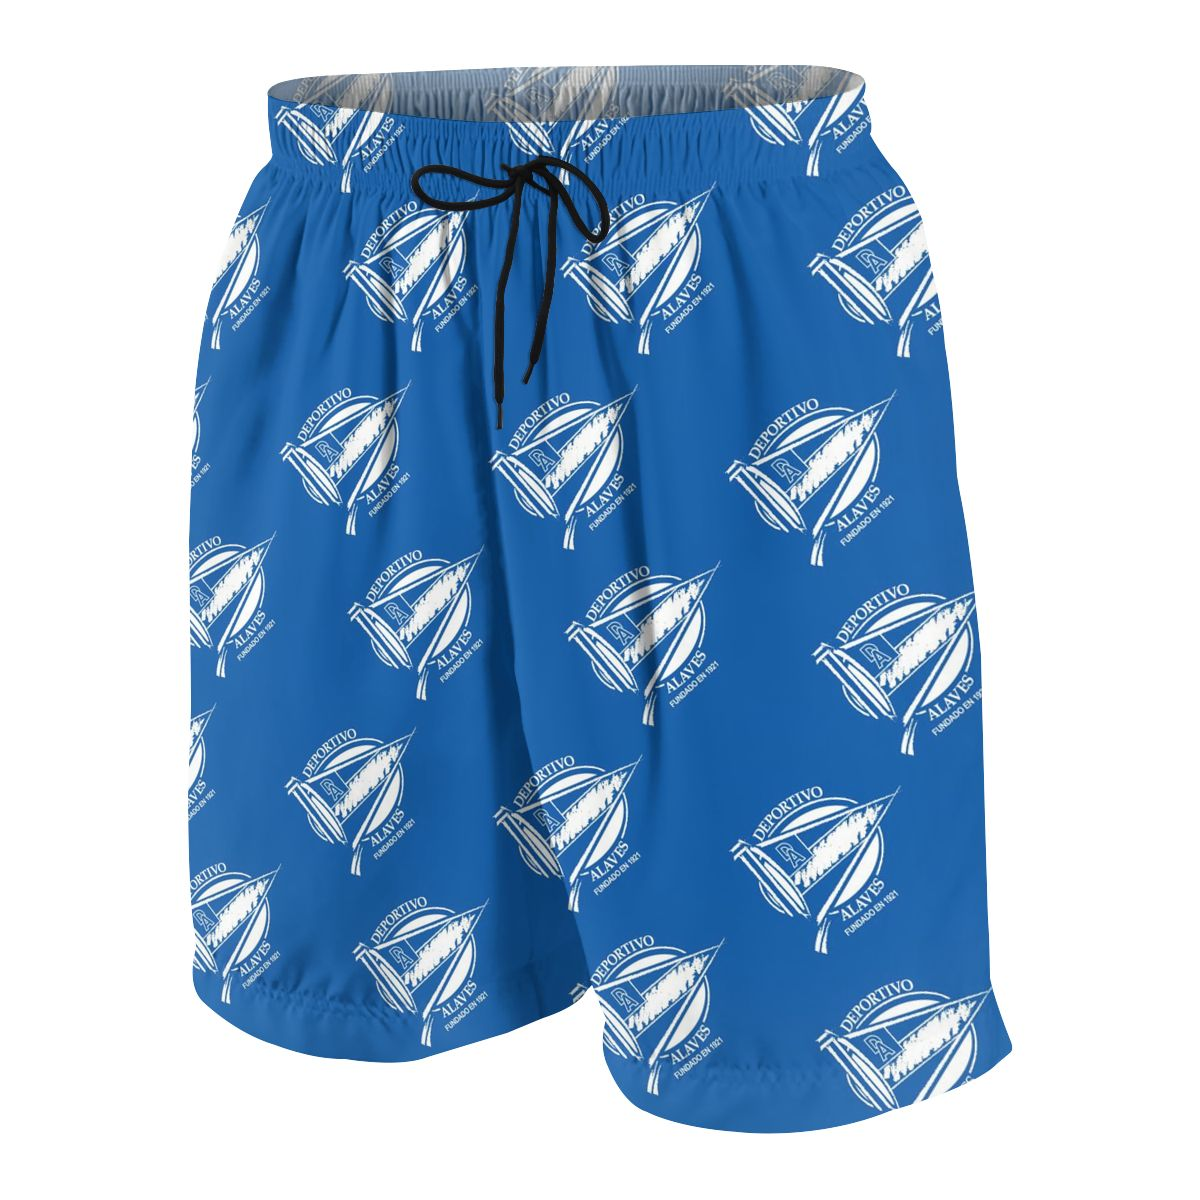 Deportivo Alaves Casual Shorts Fitness Summer Cool Short Pants Jogger Workout Teen Beach Breeches Quick Drying